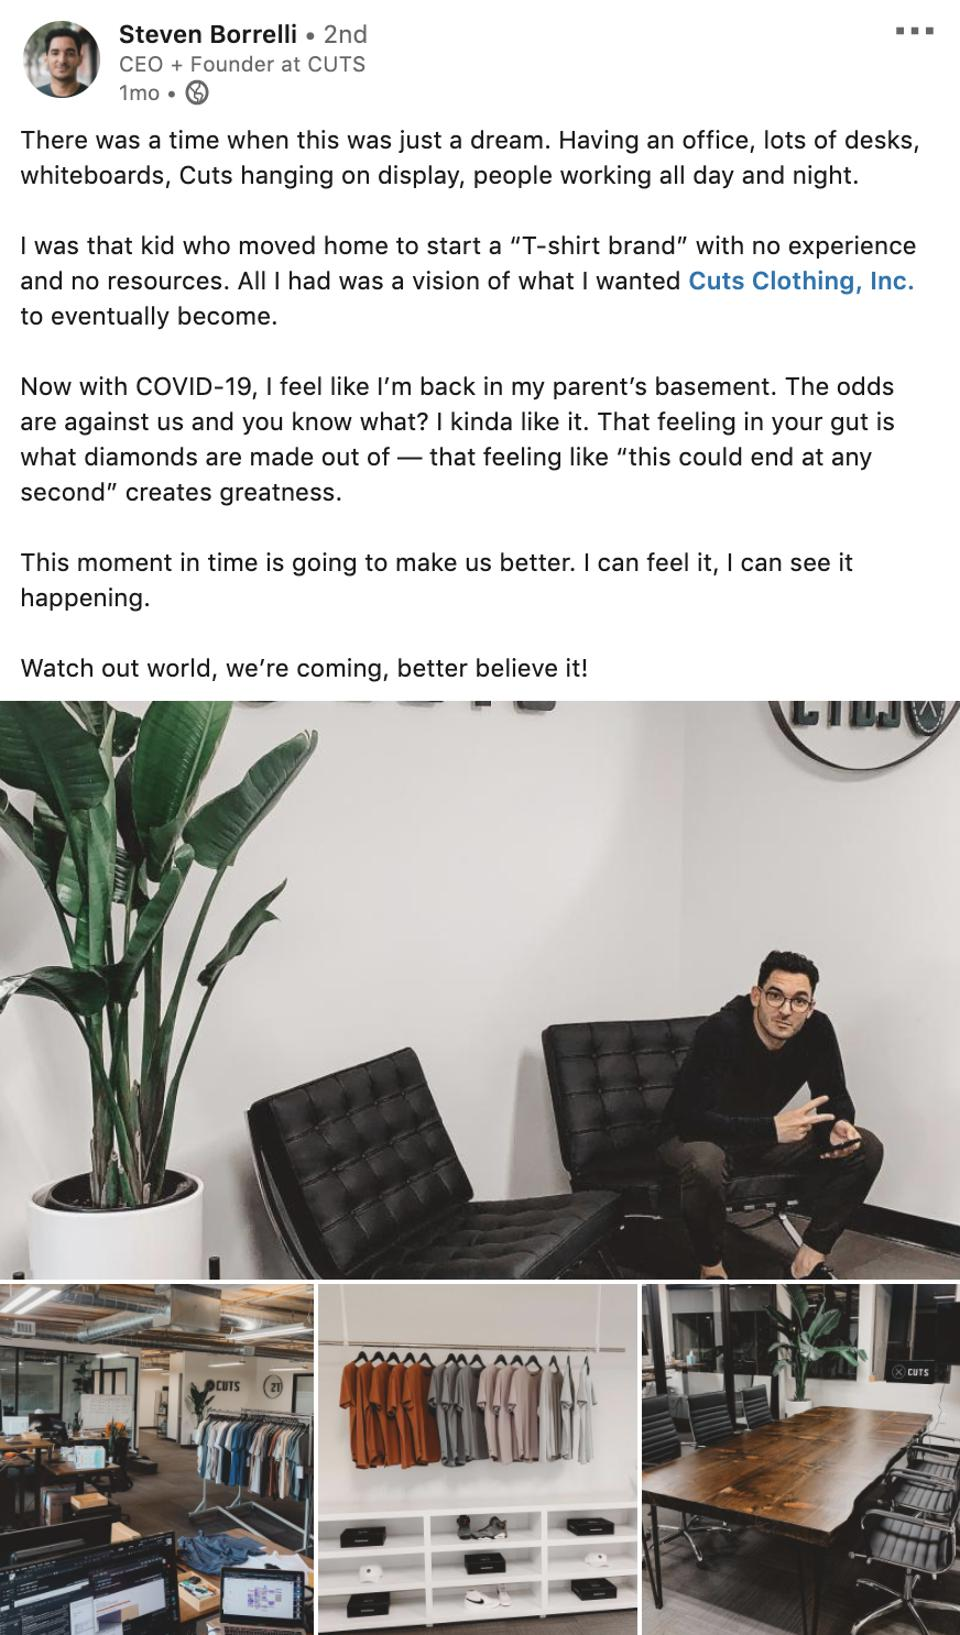 Steven Borrelli's Linkedin update describing how he and his company, Cuts Clothing have been managing the COVID-19 pandemic